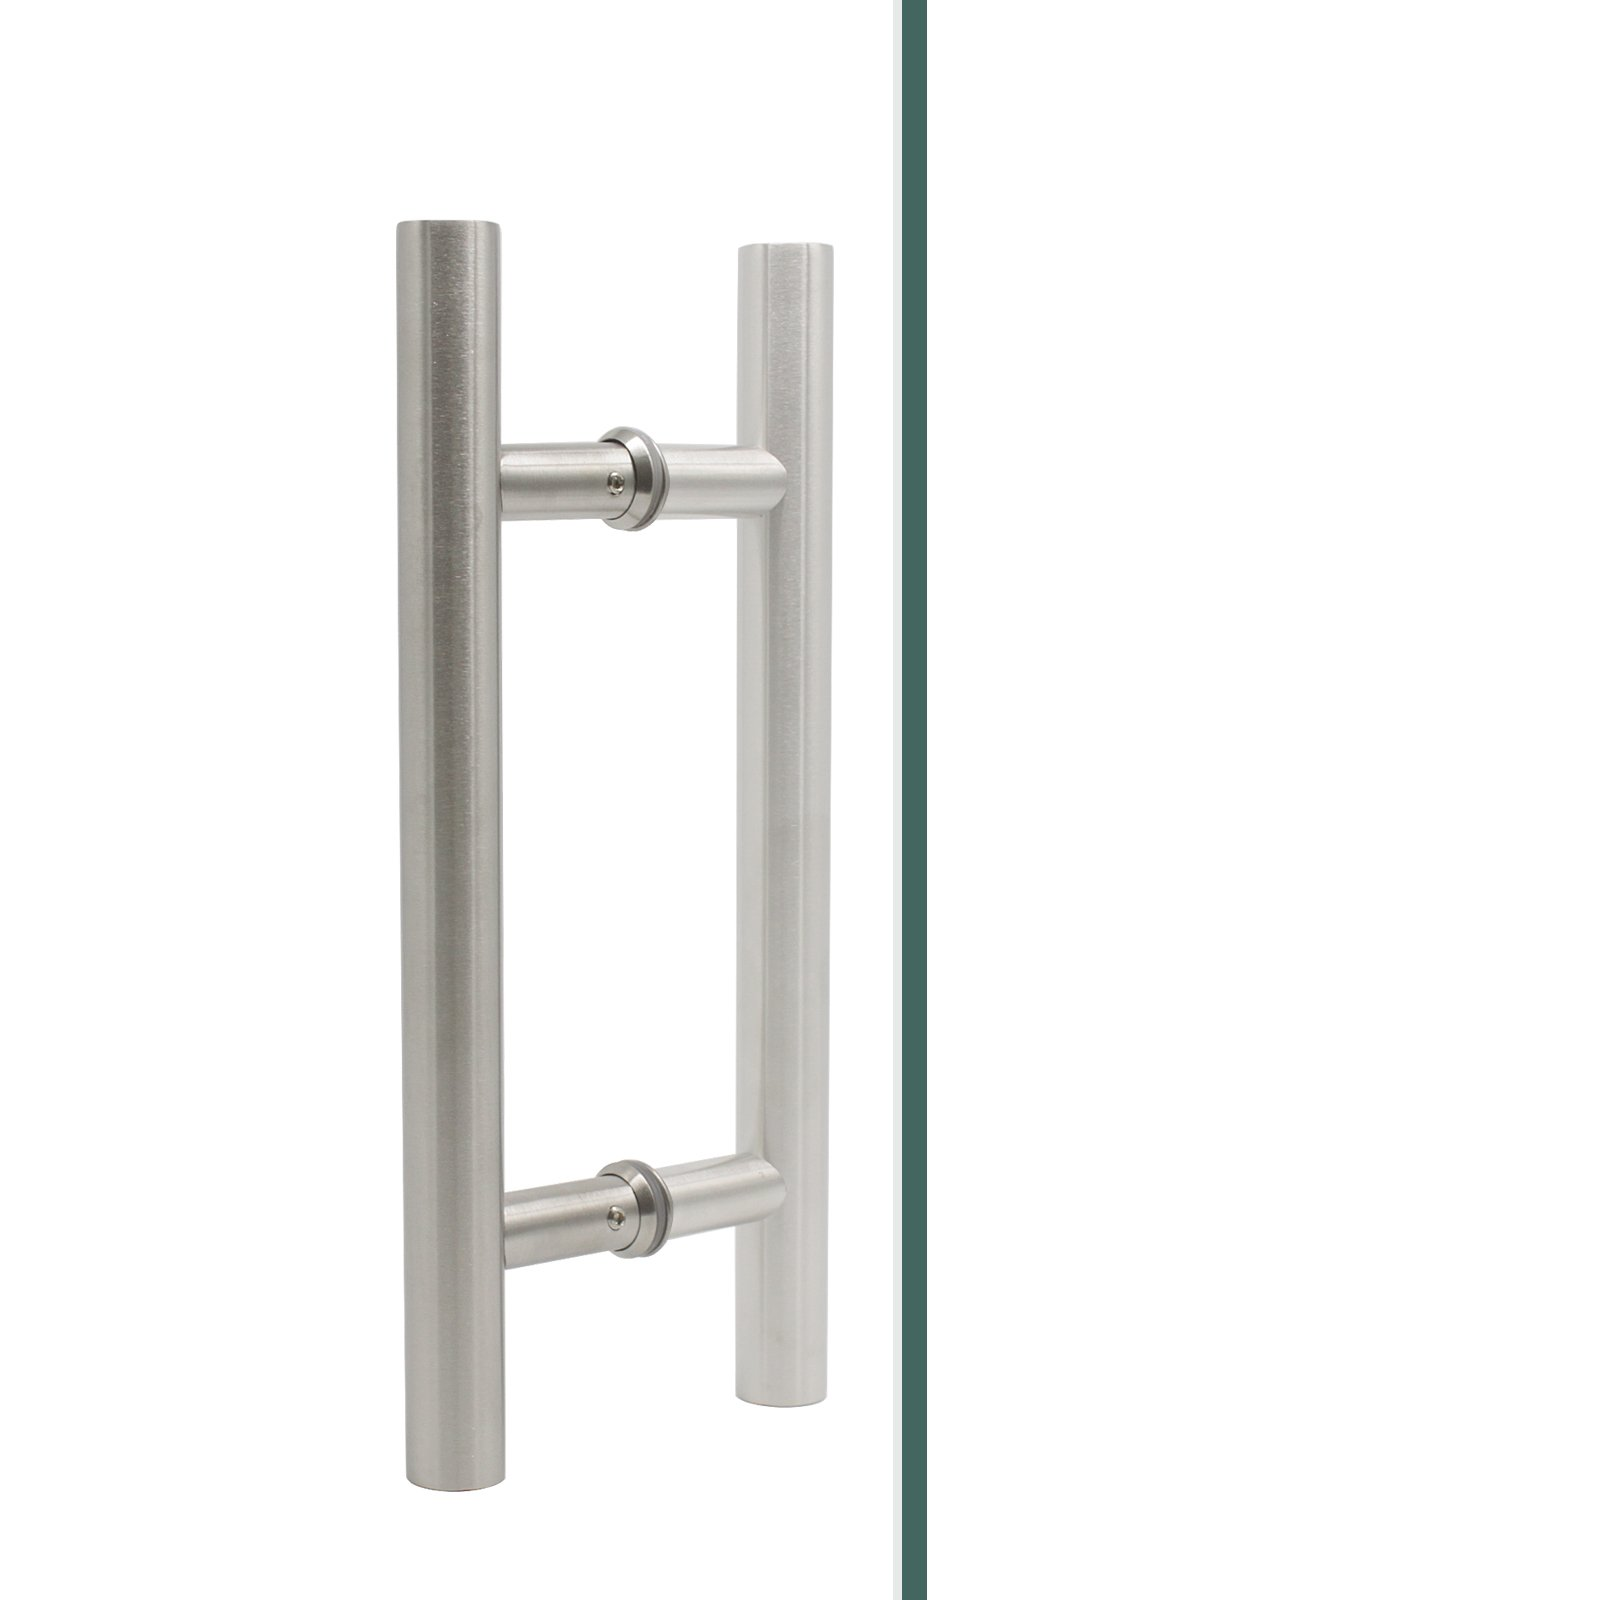 Double Side Stainless Steel Barn Door Pulls Brushed Nickel 12'' Total Length 7.4 Hole Spacing Sliding Gate Pulls